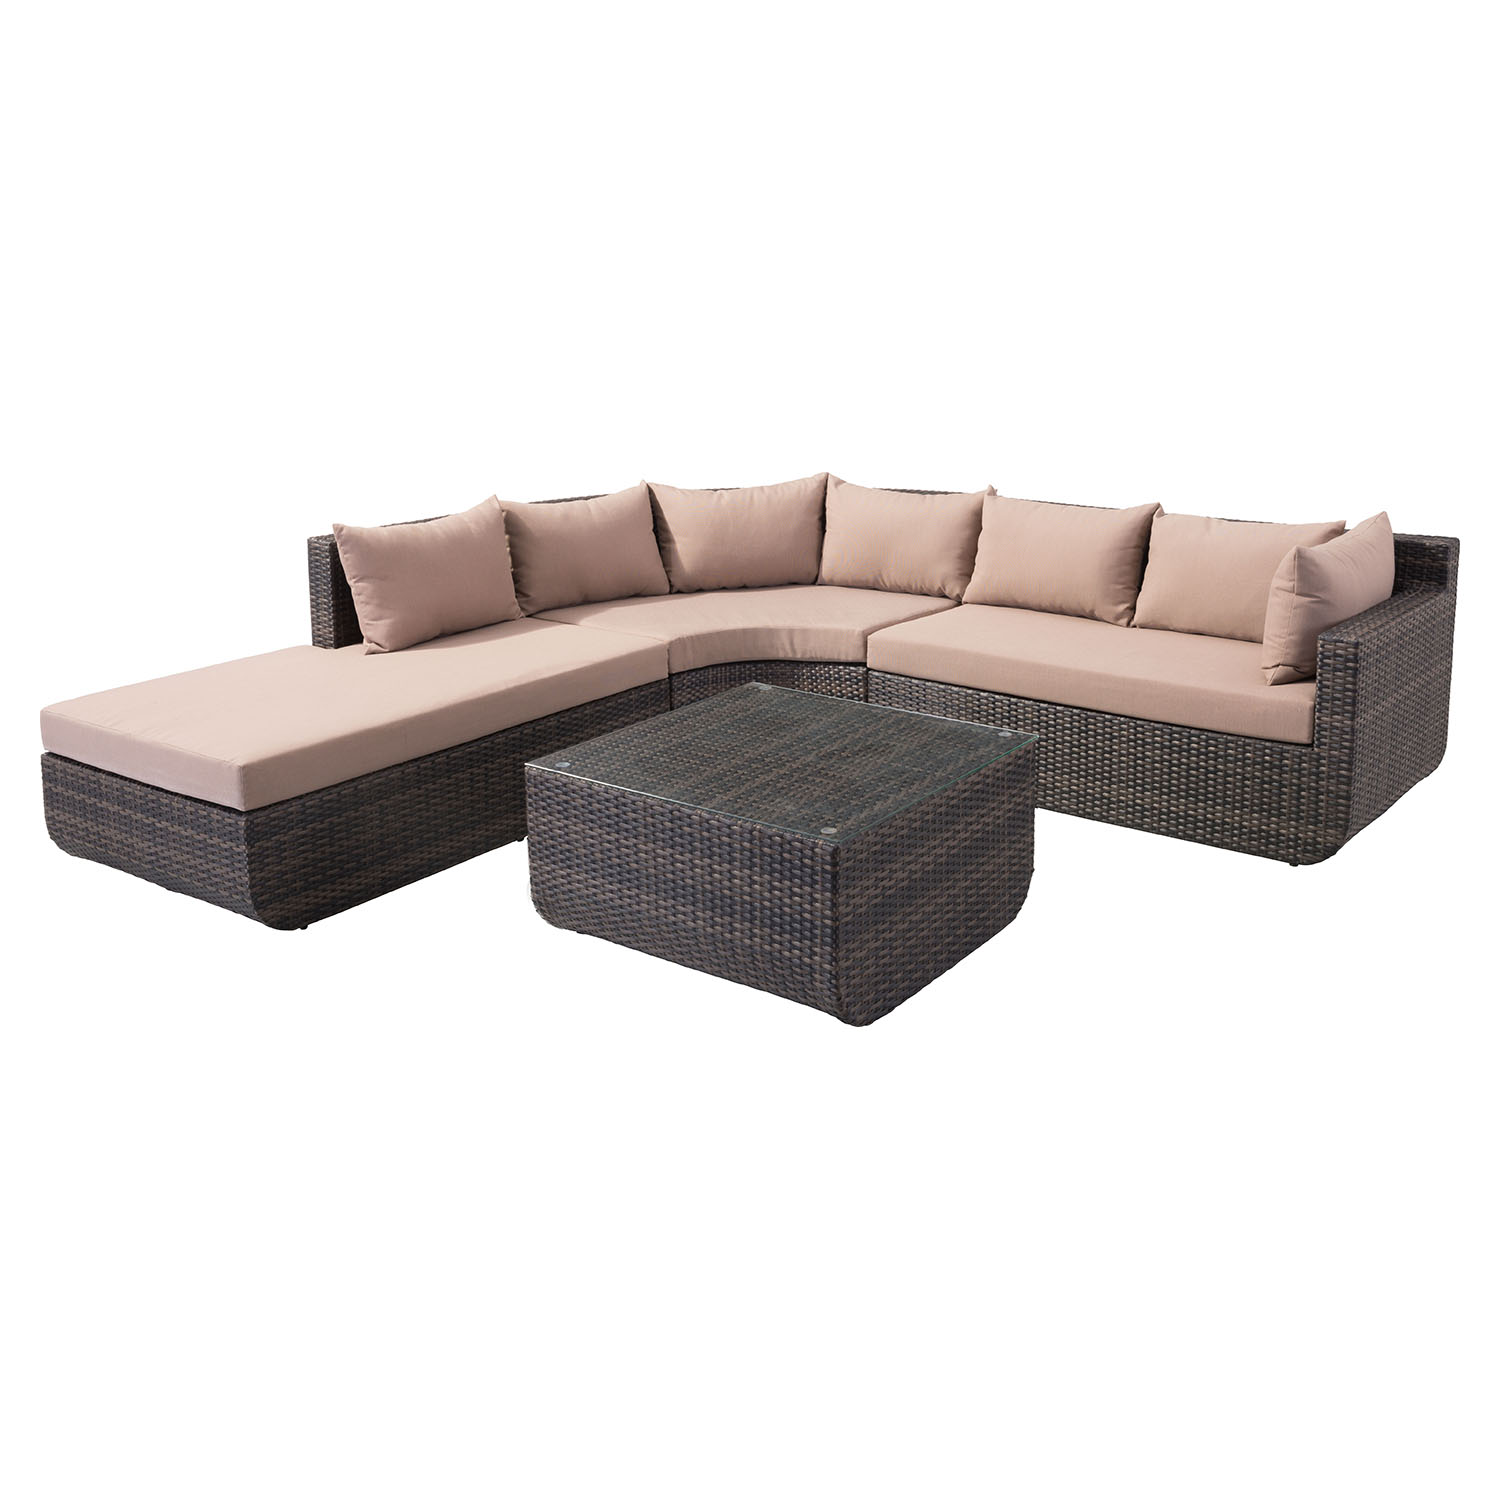 Captiva Sectional Set - Brown and Beige - ZM-703622